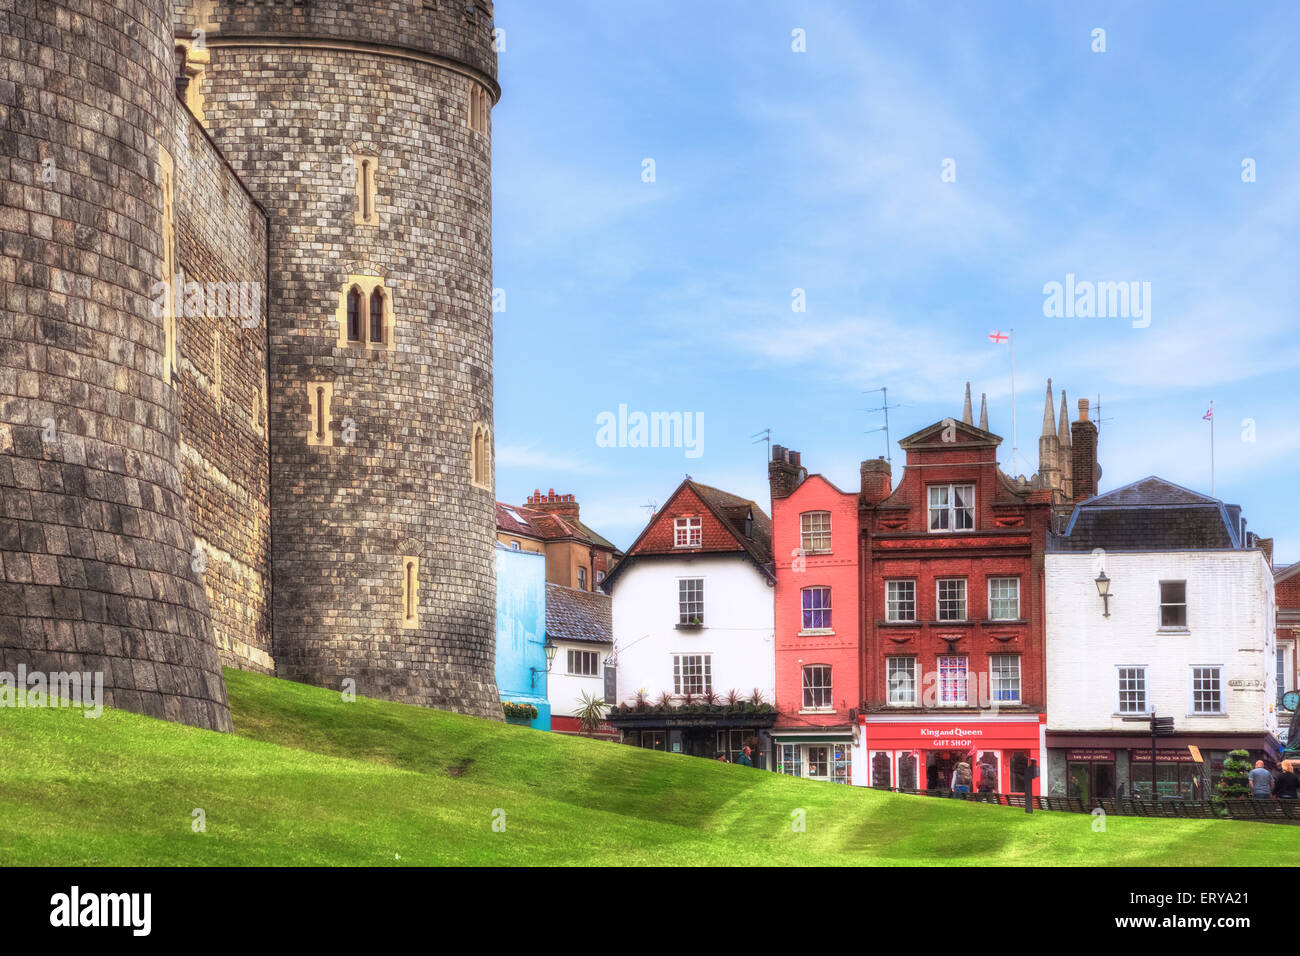 Windsor, Berkshire, England, United Kingdom - Stock Image